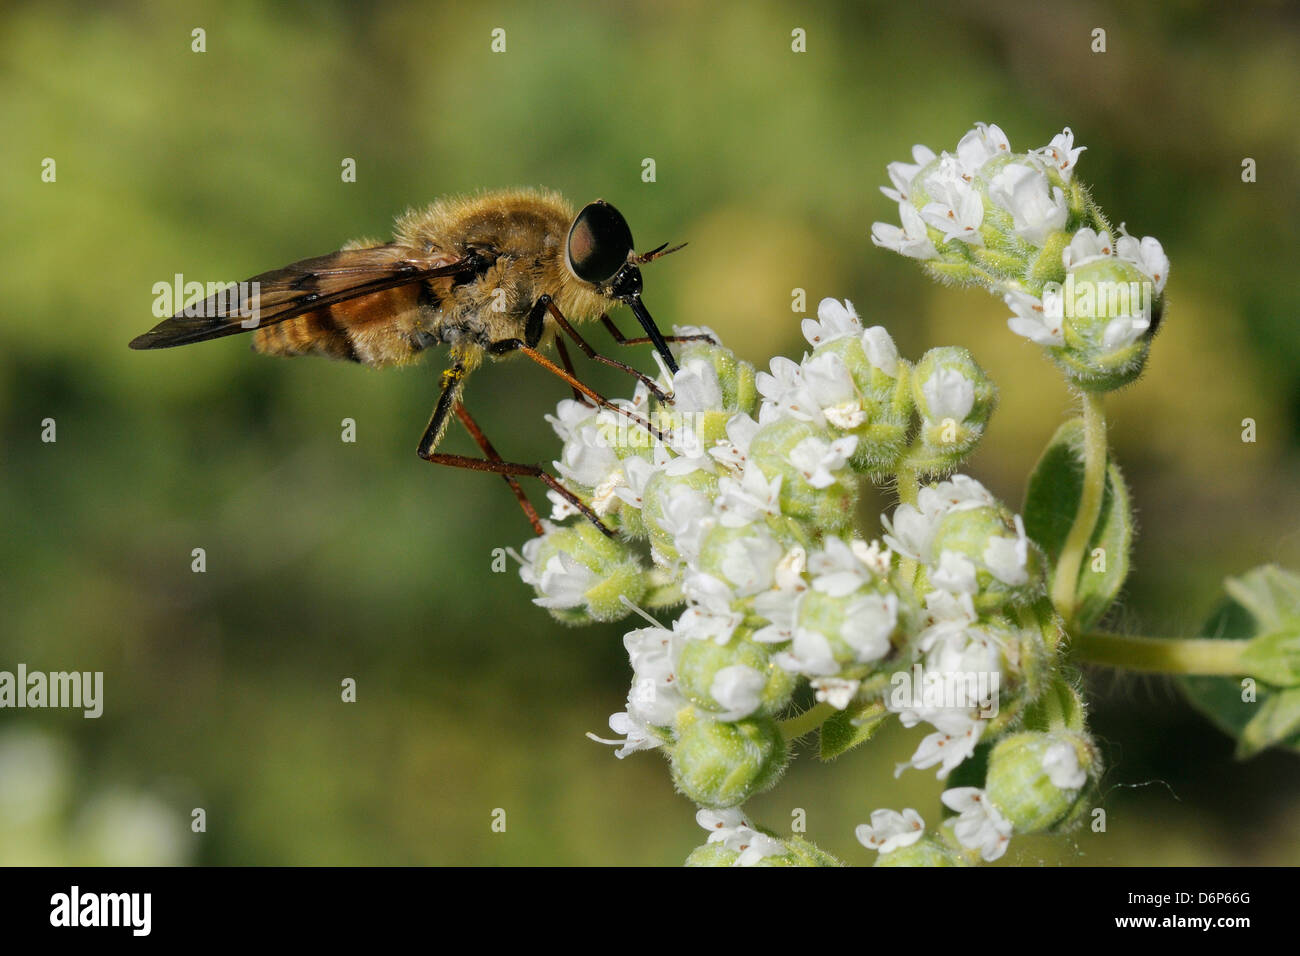 Horse fly (Pangonius pyritosus) foraging for nectar on Cretan oregano (Origanum onites) flowers, Lesbos (Lesvos), - Stock Image